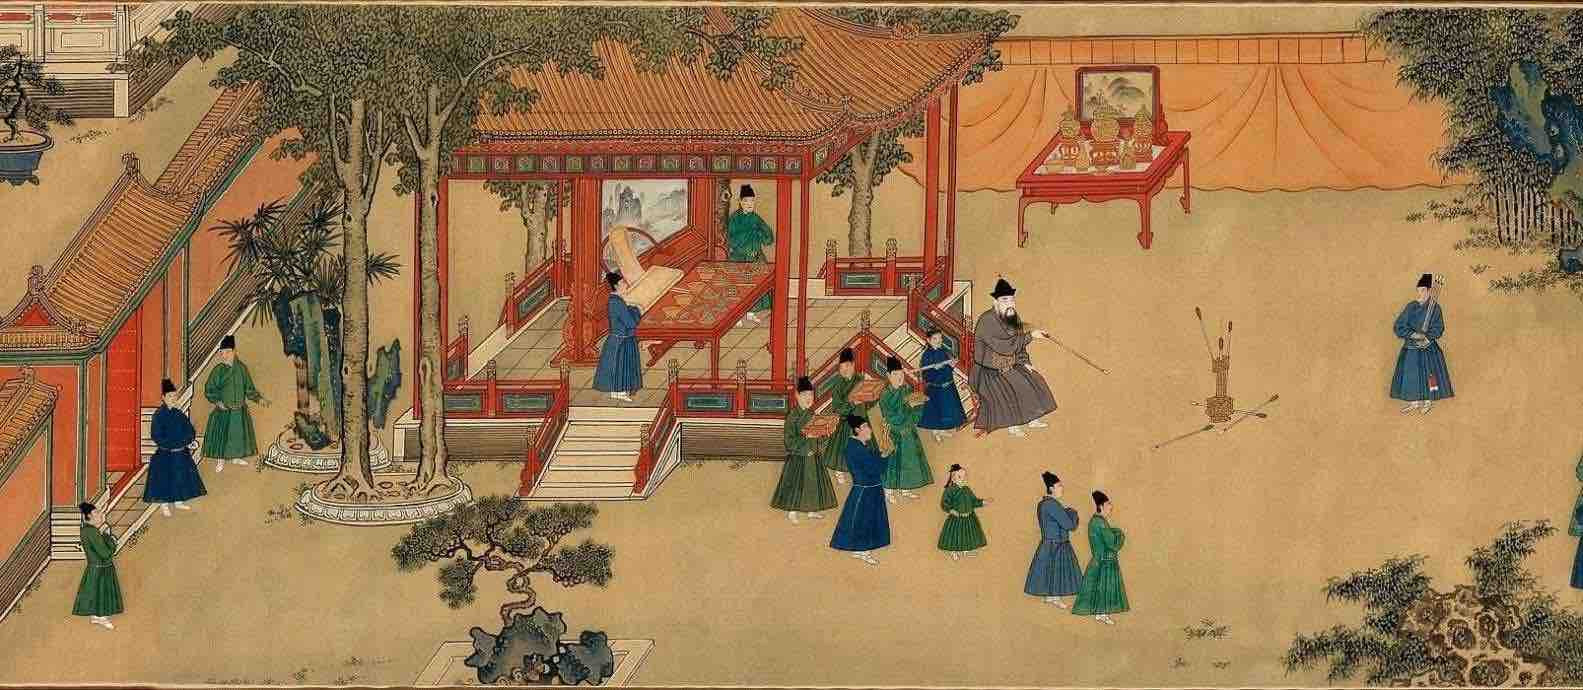 "Painting ""Zhu Zhanji Xing Le Tu"" Presenting Emperor Zhu Zhanji's Entertainment Activities in the Royal Palace Part 2"